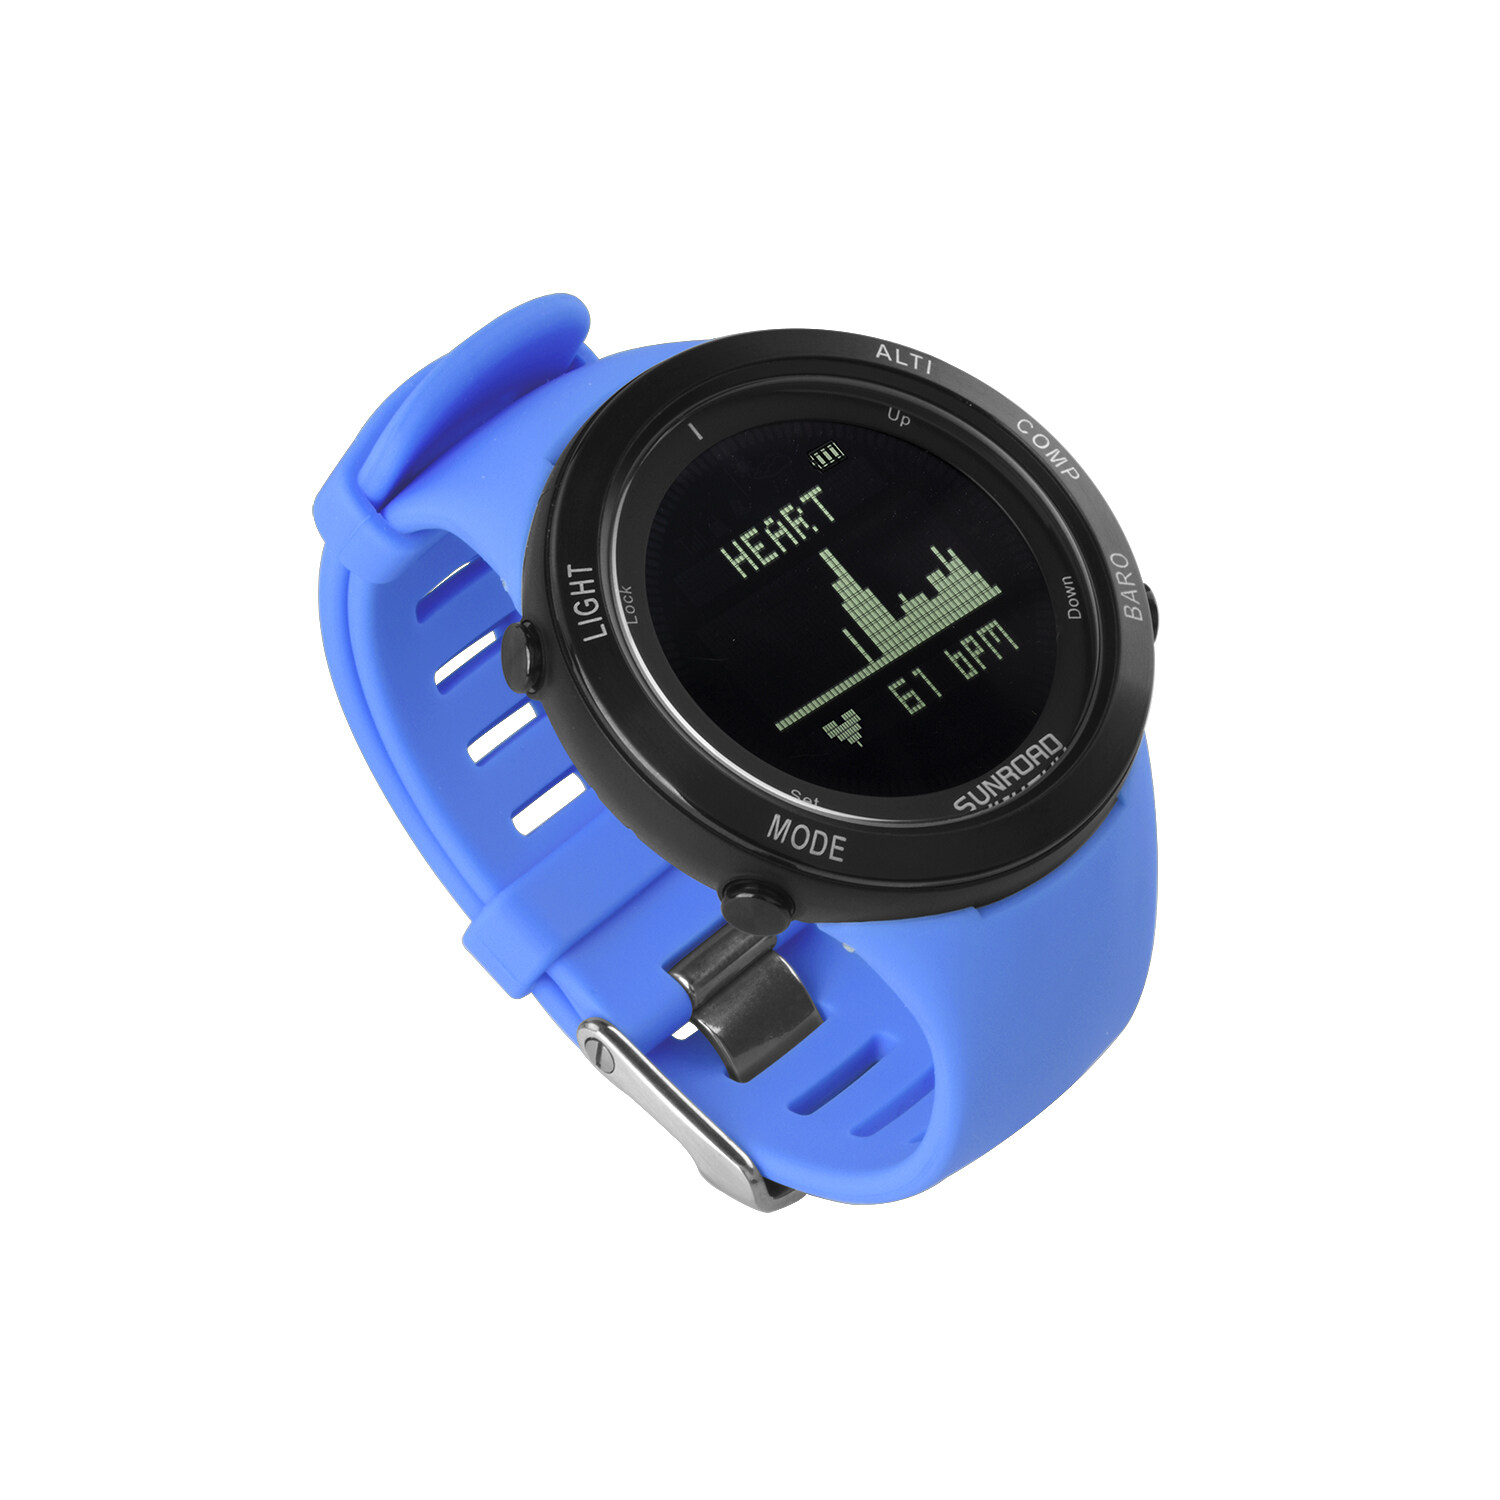 Sunroad heart rate outdoor sports watch with Pedometer, altimeter, climb data, hiking, camping, traveling watch waterproof 9